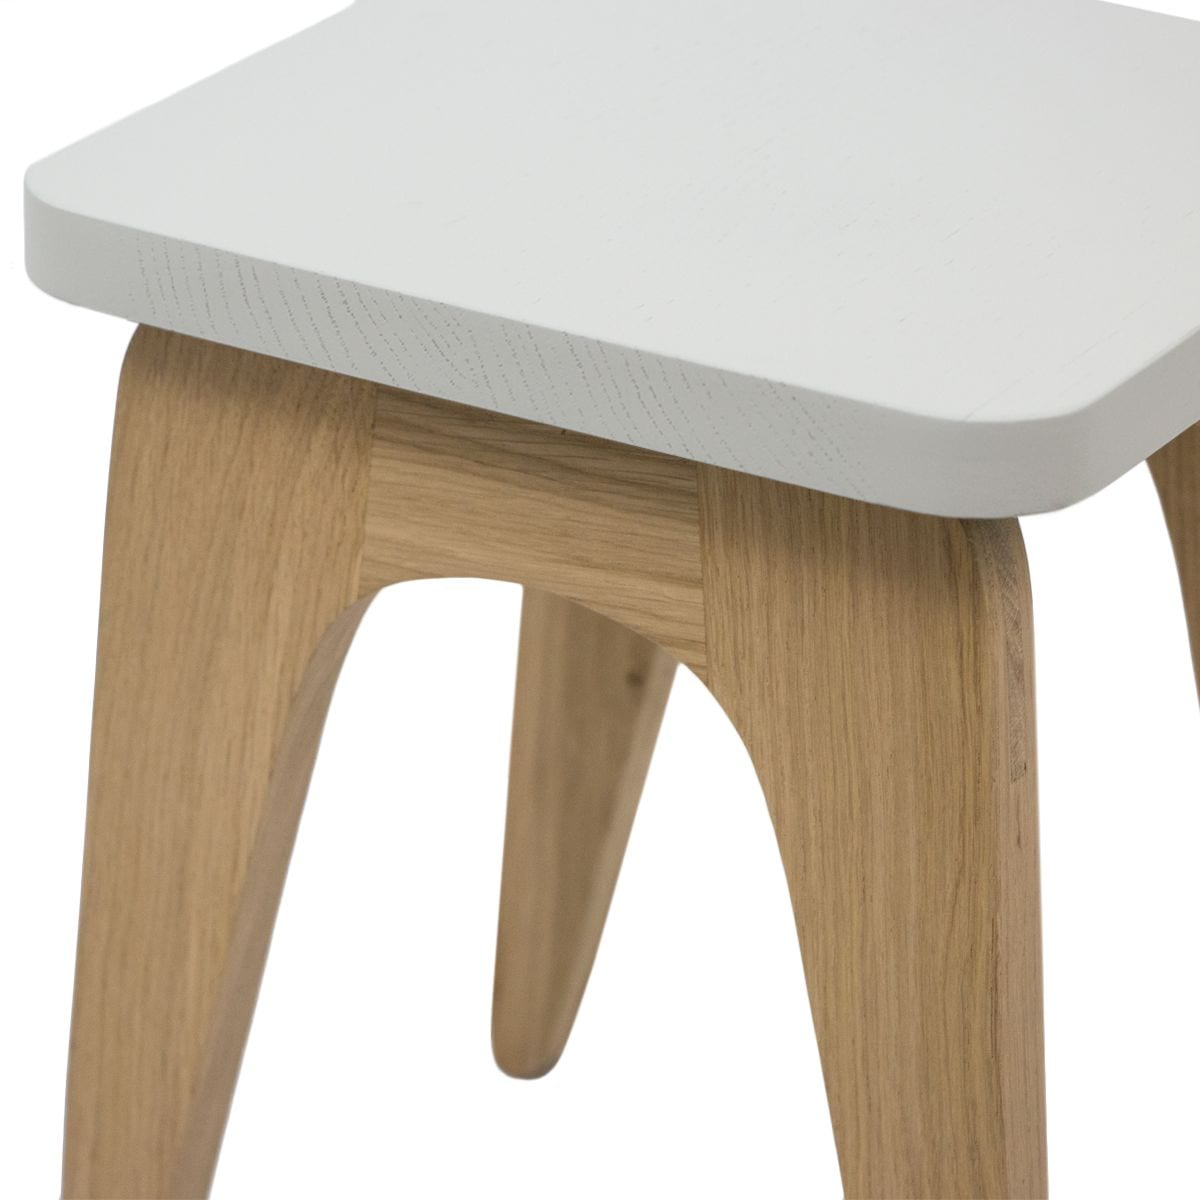 Tabouret Enfant Et Bébé Made In France, Mobilier Durable